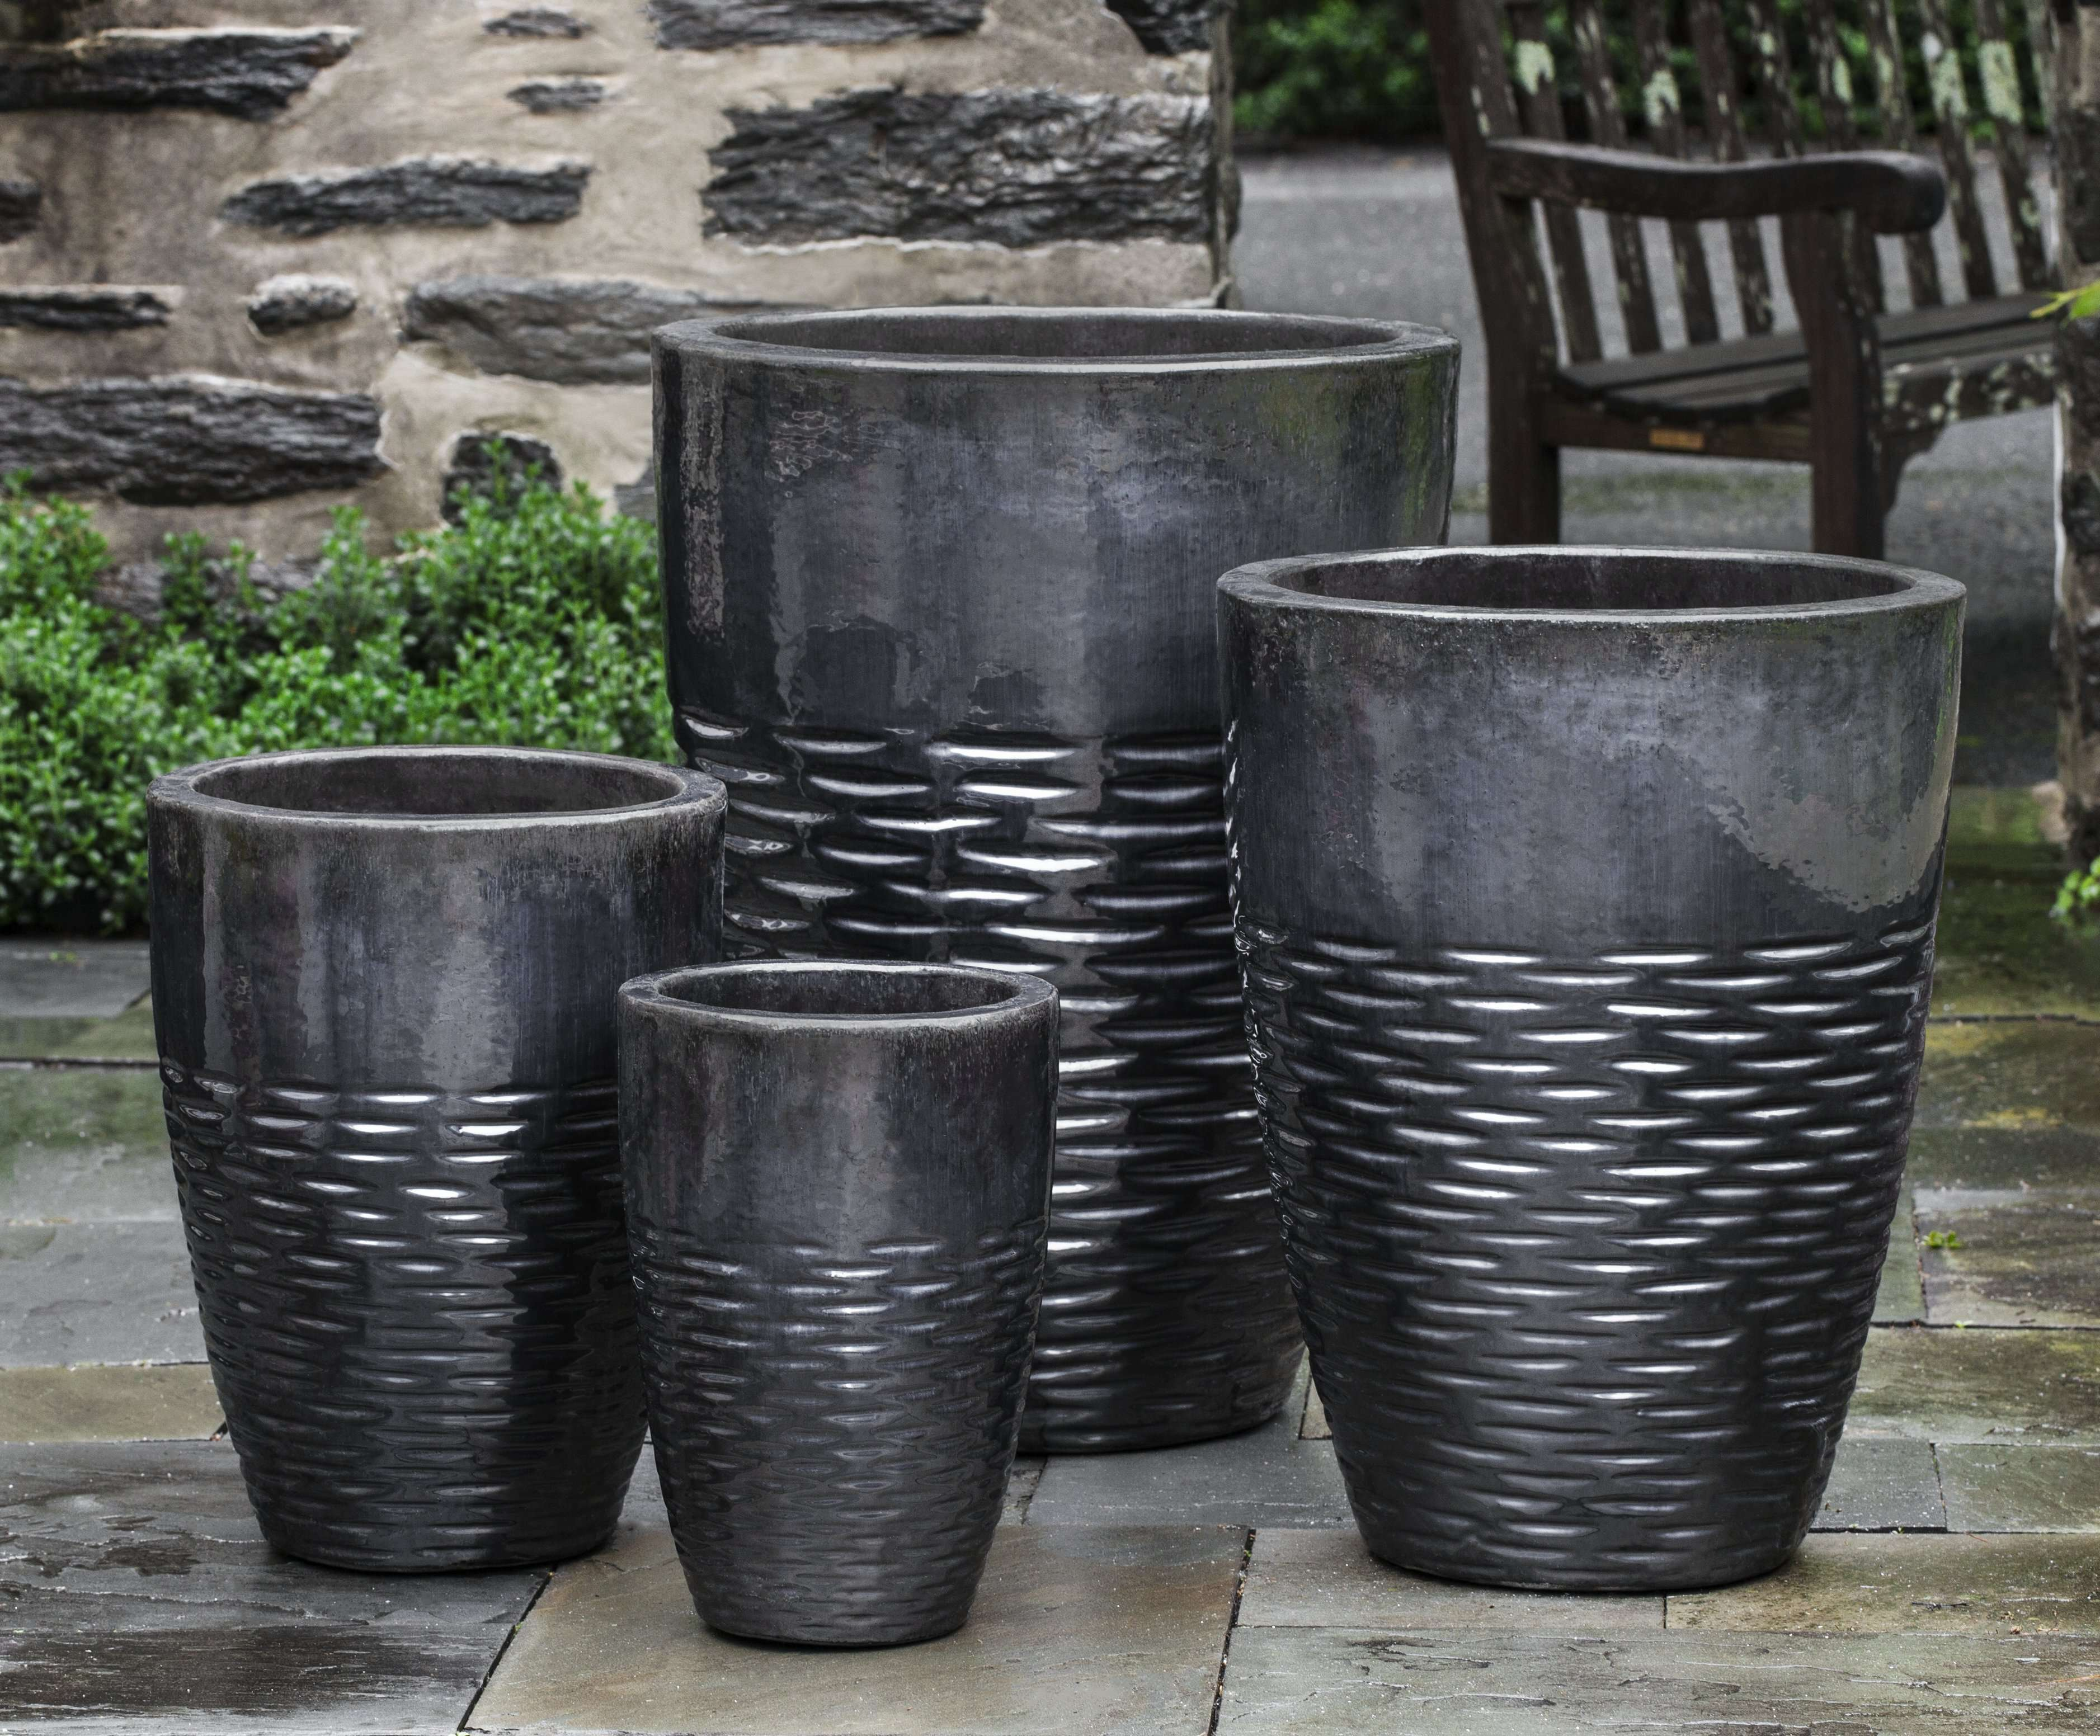 Hyphen Ice Black Tall Planter - Set of 4 in Various Sizes